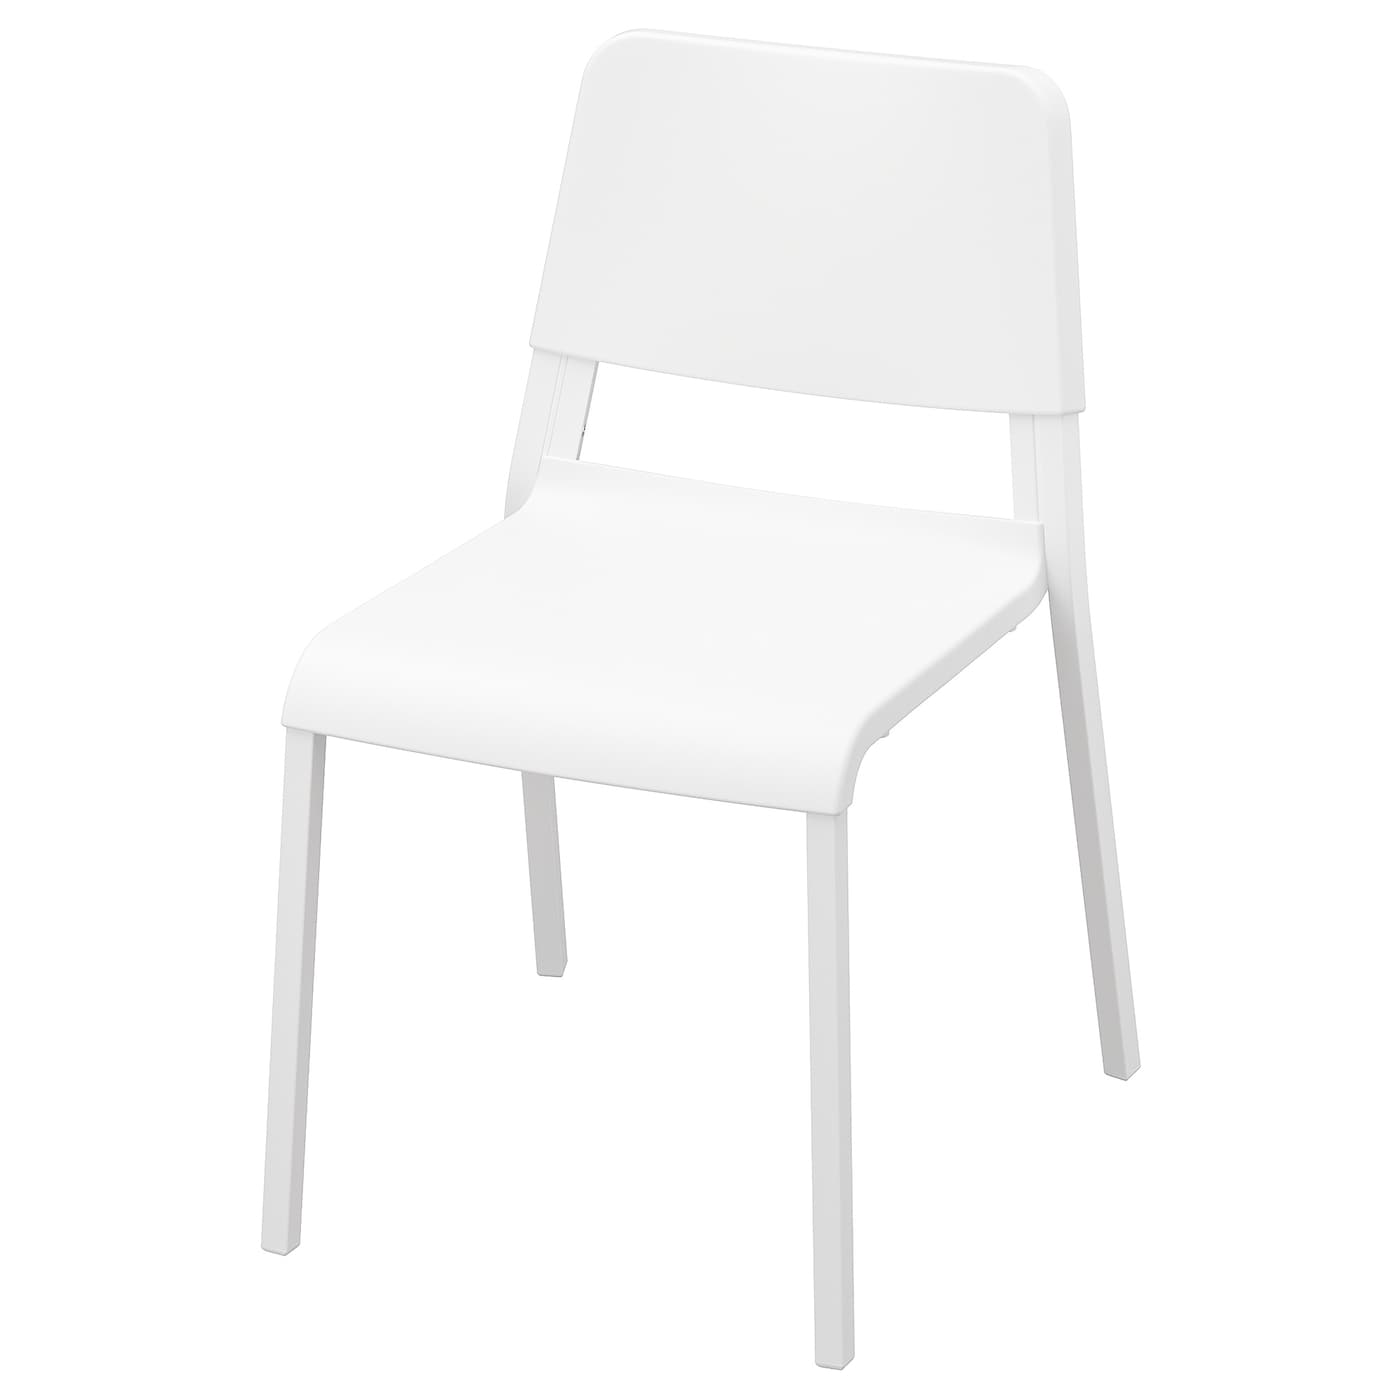 TEODORES Chair - white